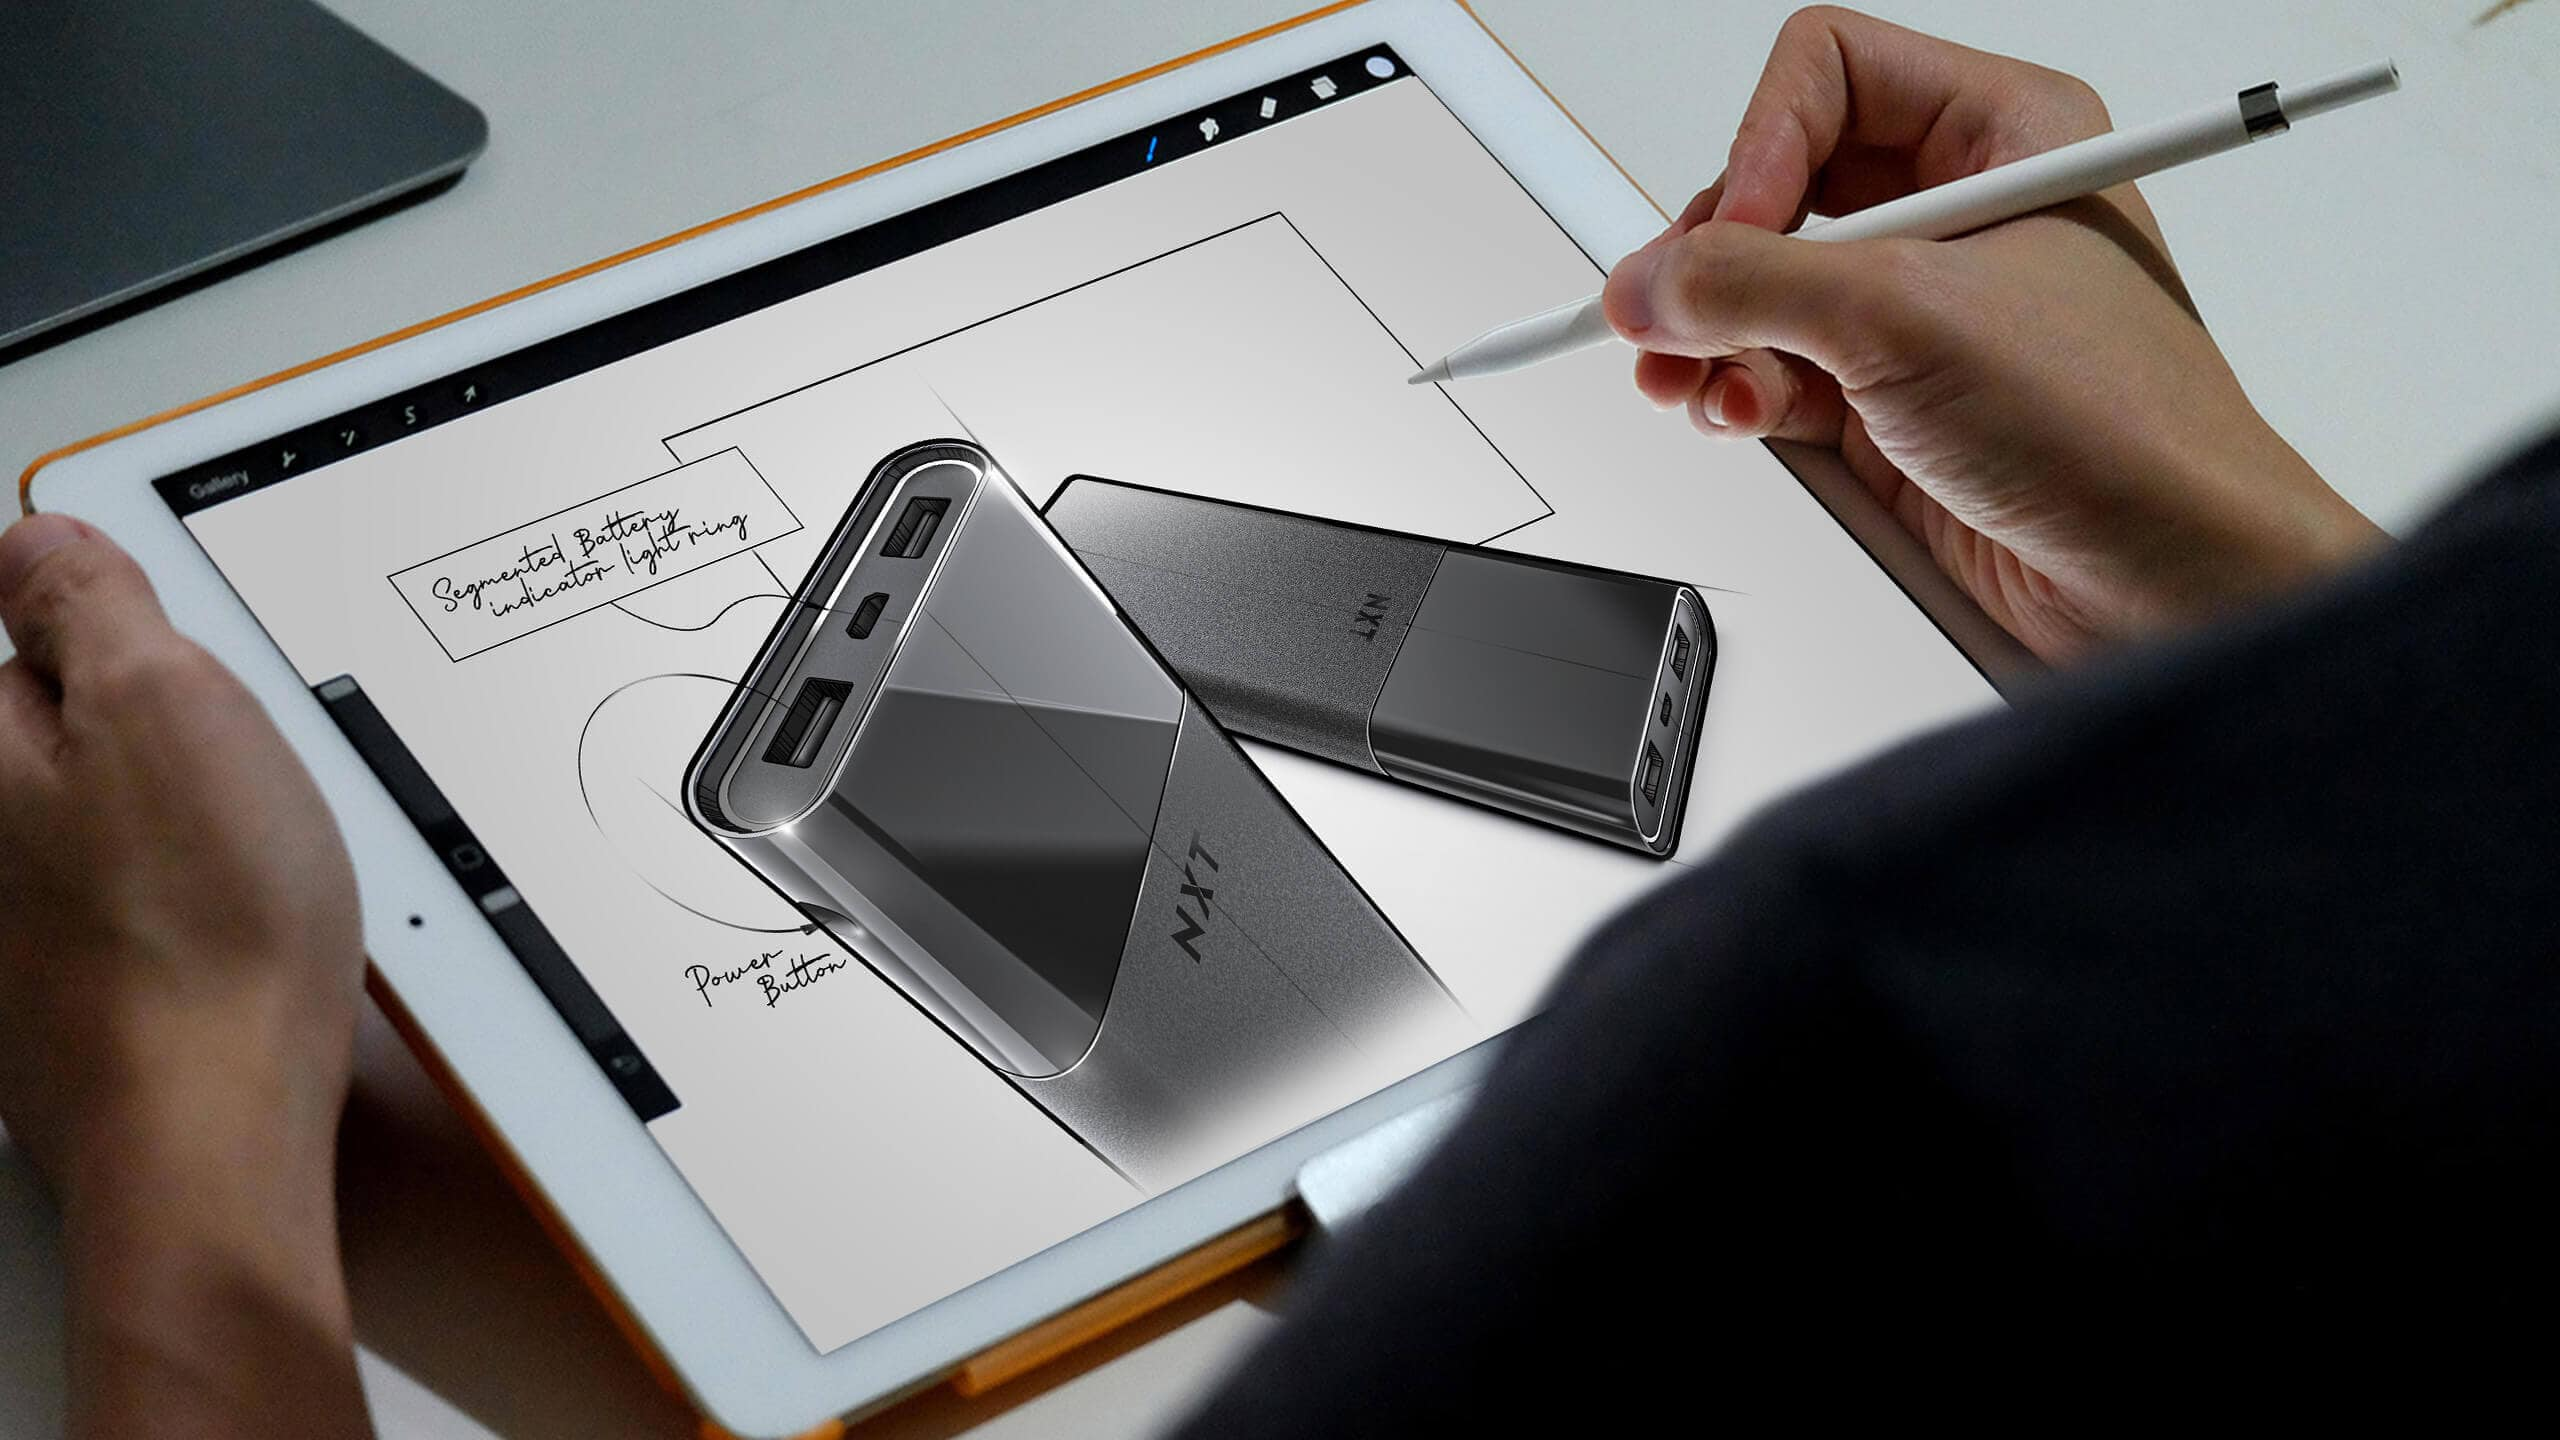 Guy Sketches a product concept